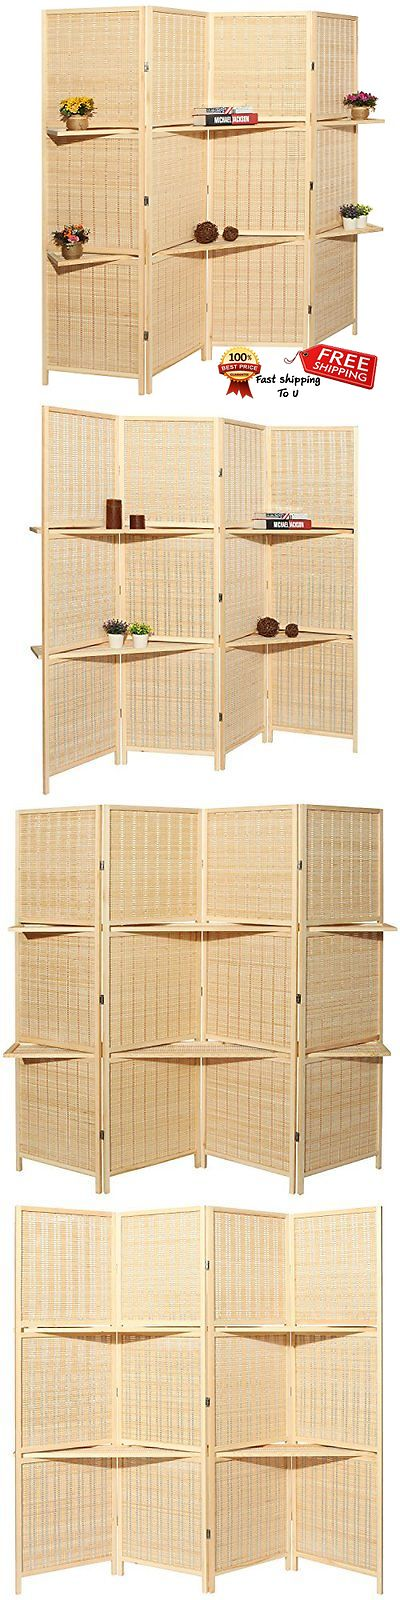 Screens and Room Dividers 31601: Outdoor Private Screen Deluxe Beige Bamboo 4 Panel Folding Room Divider Spa Room -> BUY IT NOW ONLY: $164.49 on eBay!